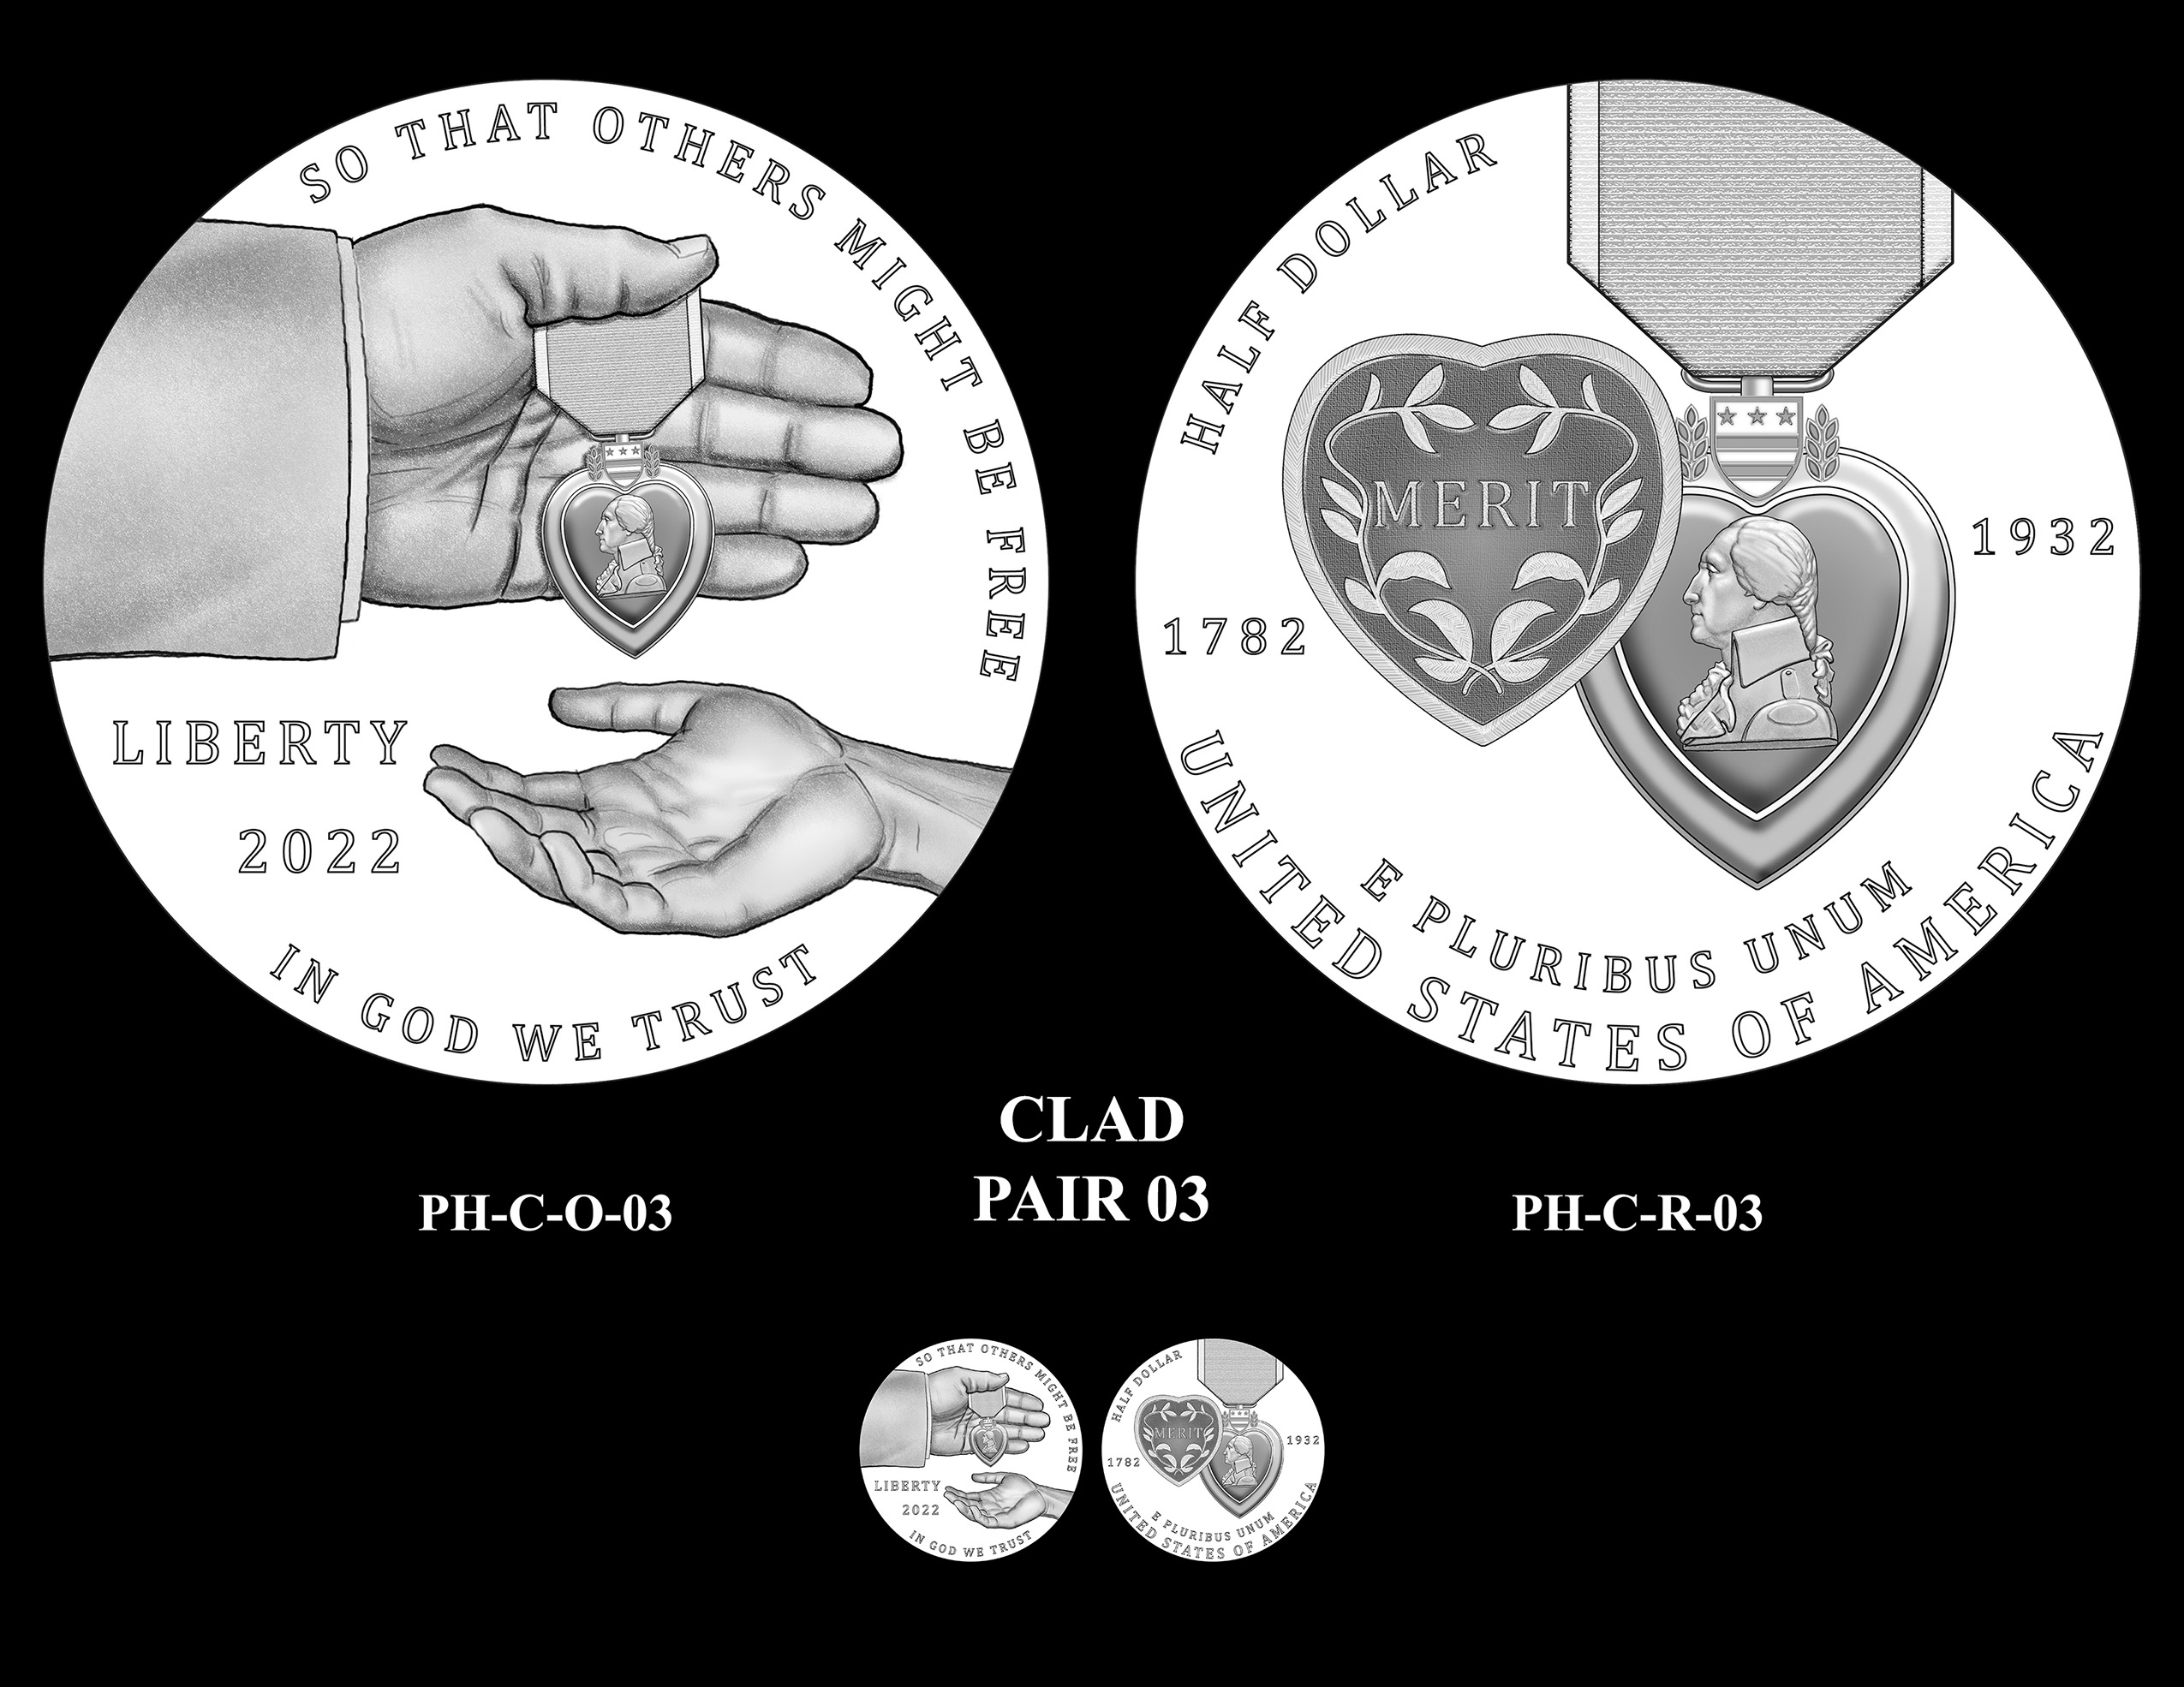 Clad Pair 03 -- National Purple Heart Hall of Honor Commemorative Coin Program